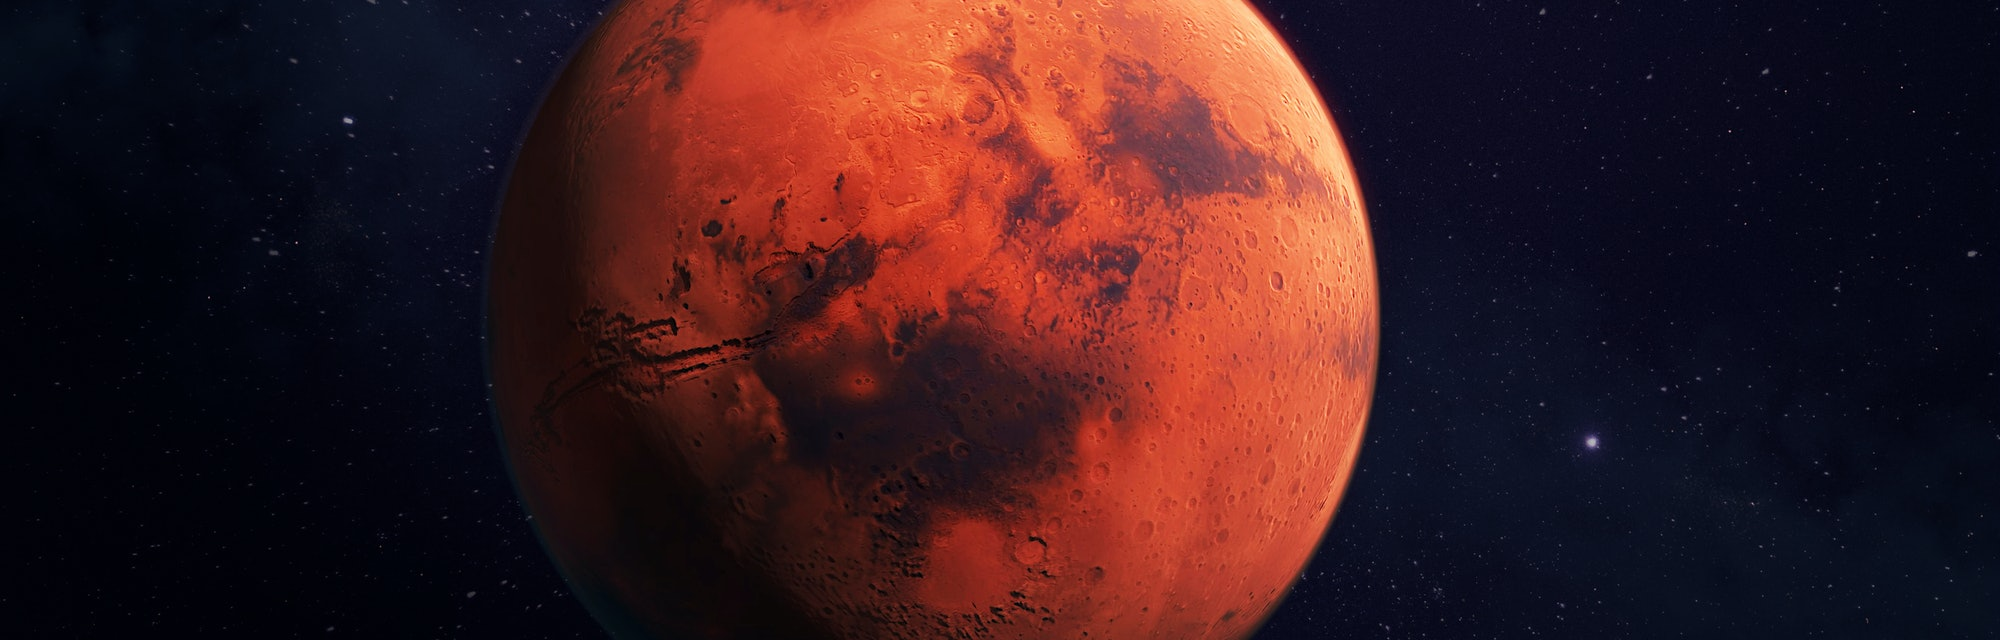 Mars, the red planet, 3d rendering with detailed surface features, with atmosphere, and dark backgro...